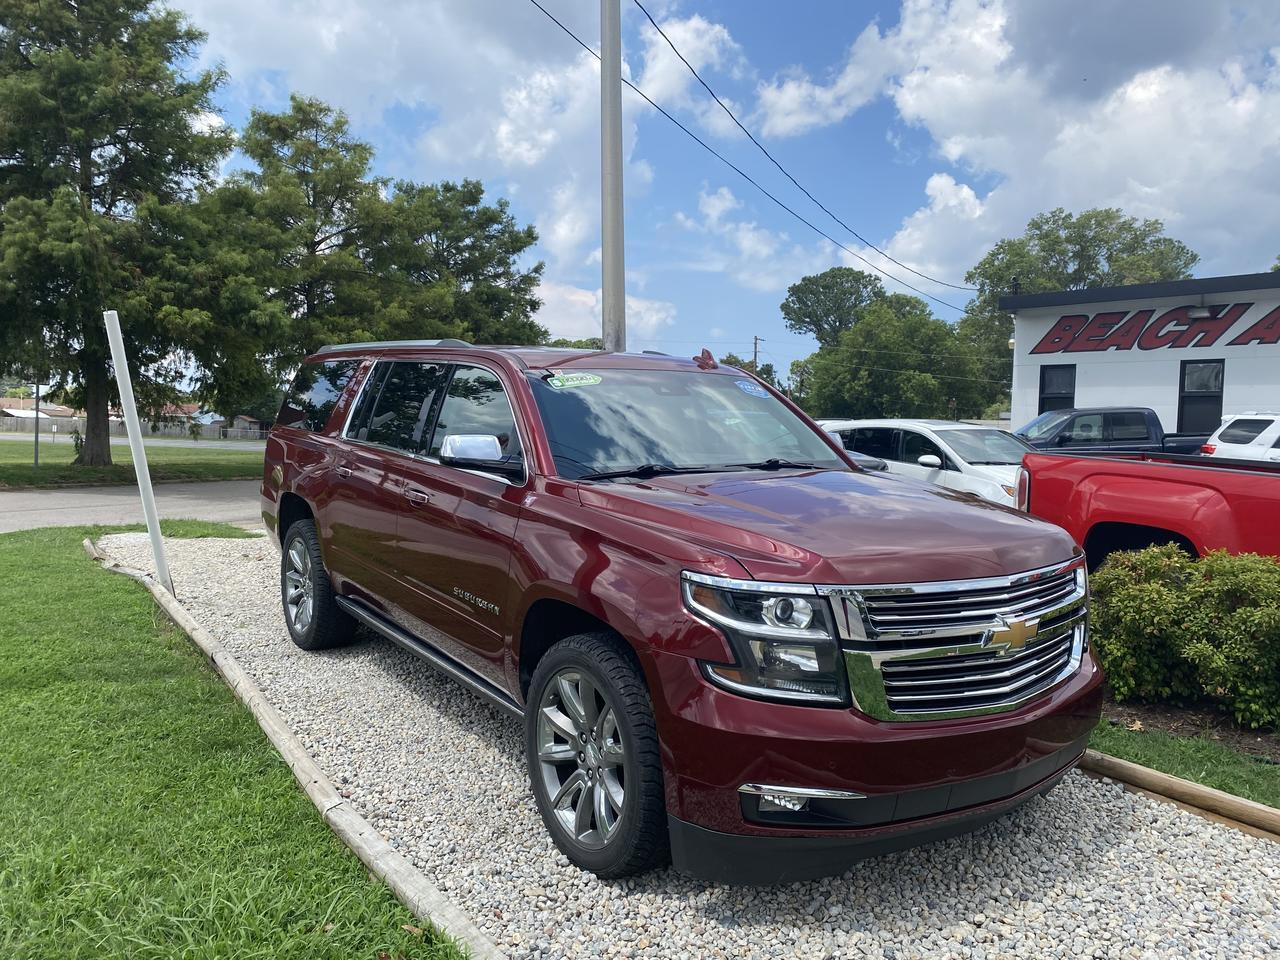 2017 CHEVROLET SUBURBAN PREMIER 4X4, WARRANTY, LEATHER, NAV, 3RD ROW, FULLY LOADED, BACKUP CAM, 1 OWNER, CLEAN CARFAX! Norfolk VA